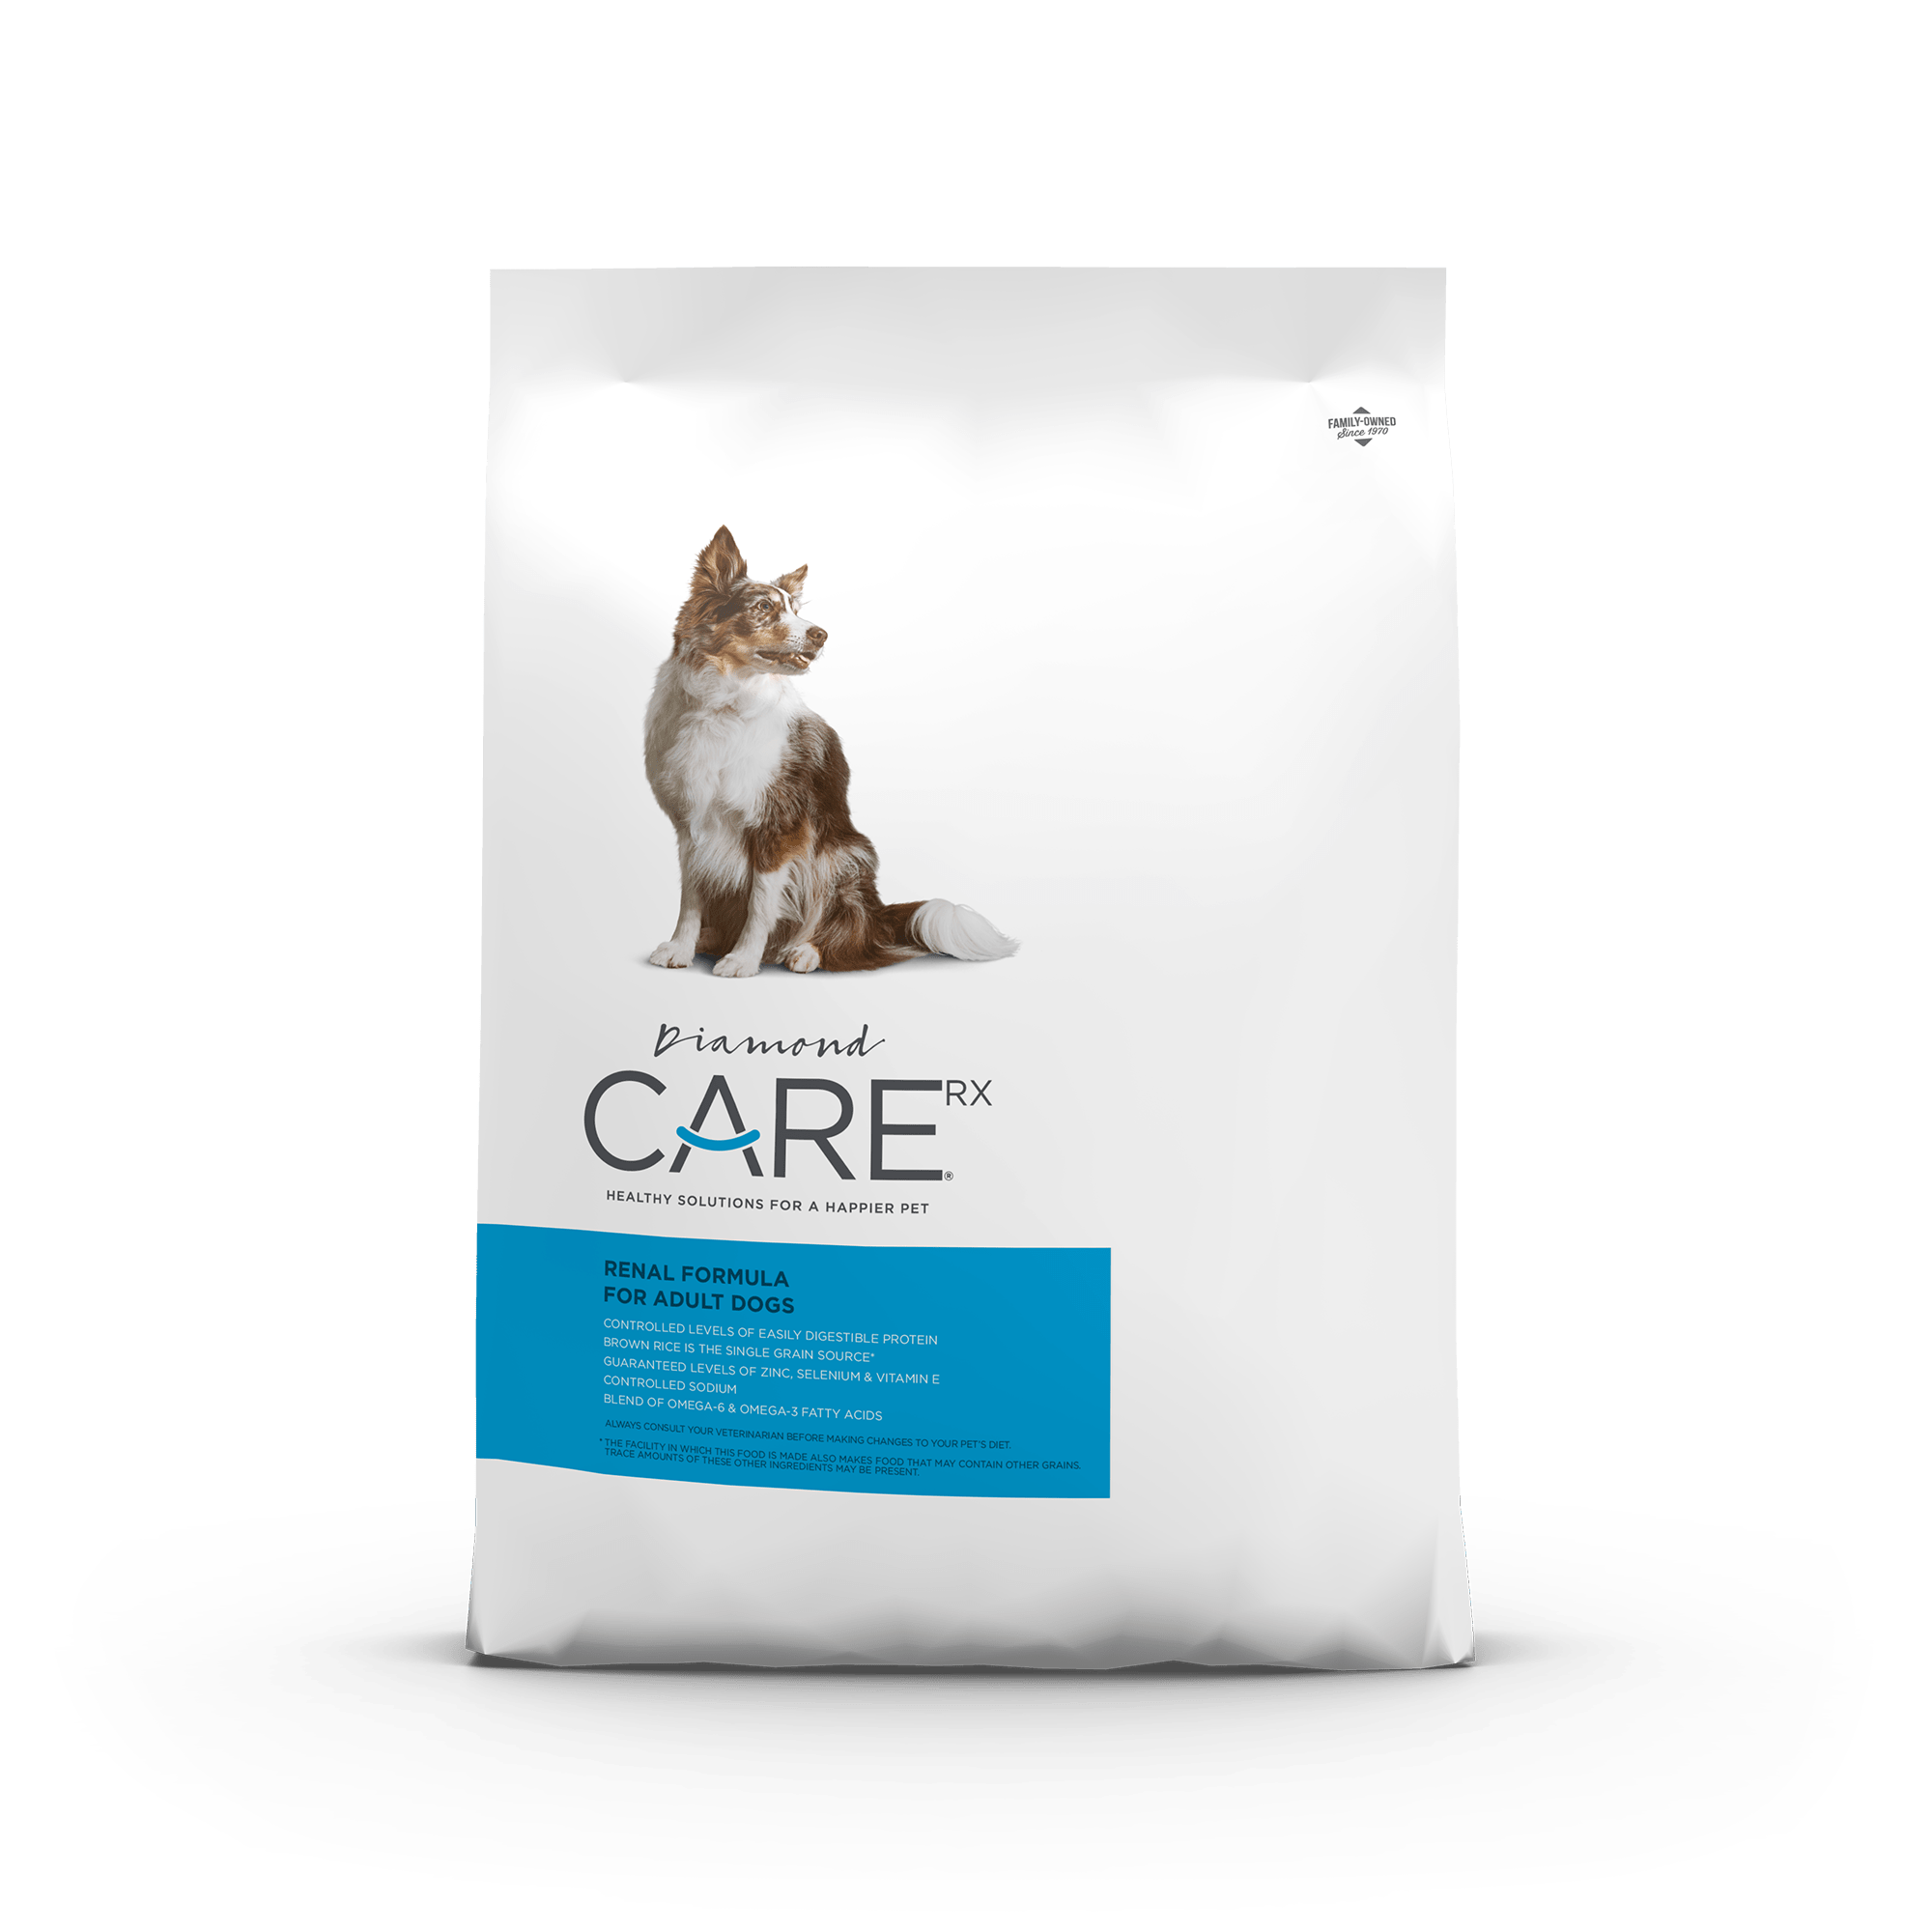 Diamond CARE Rx Prescription Renal Formula for Adult Dogs product packaging